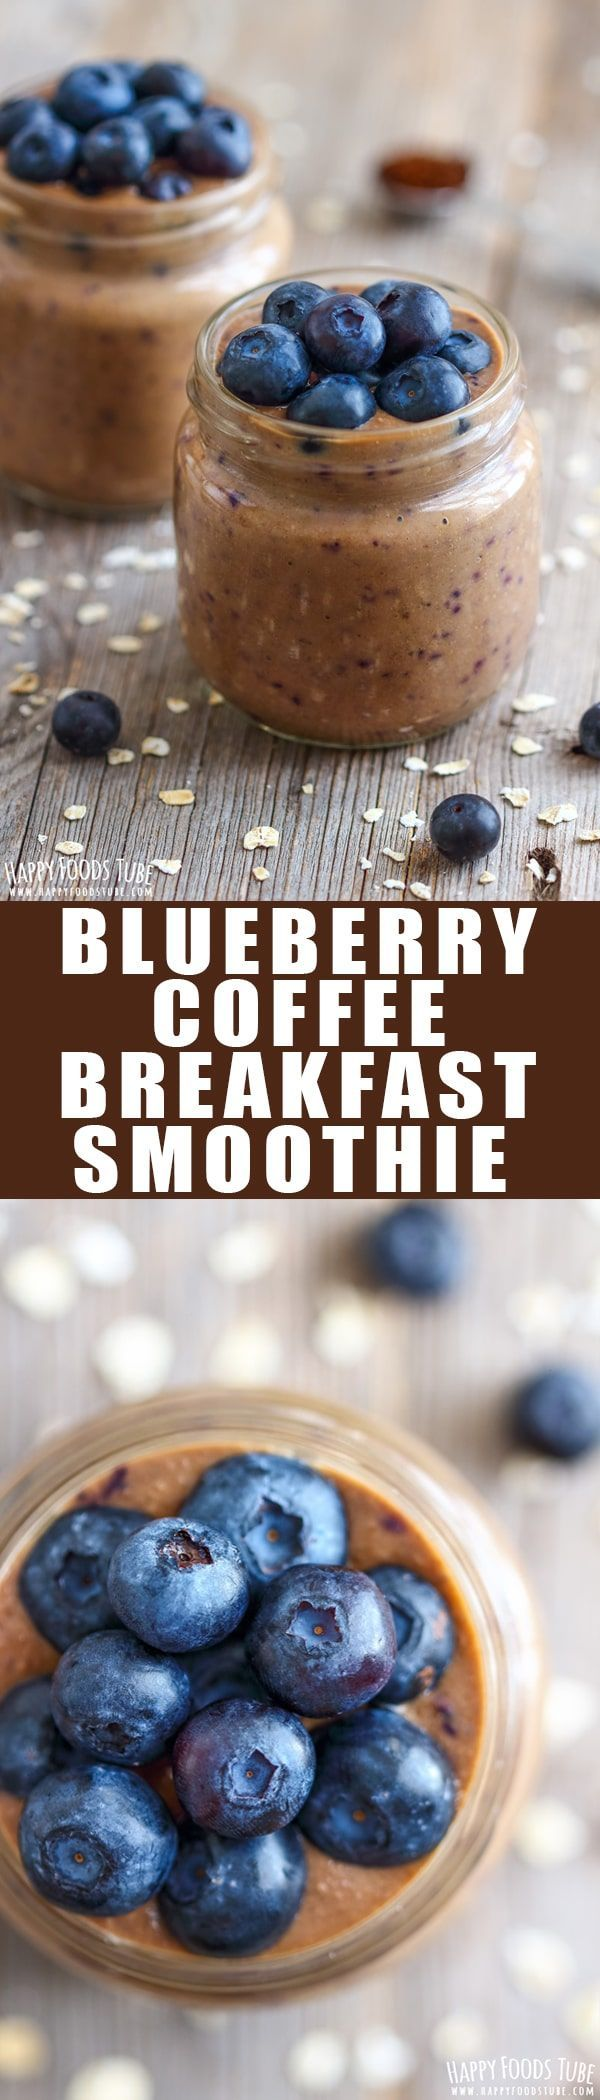 This is the ultimate breakfast for people on the go. Naturally sweet blueberry coffee breakfast smoothie is a quick and tasty way to start your day. Easy coffee smoothie recipe. Blender smoothie. Dairy free and gluten free smoothie. #smoothie #breakfast #